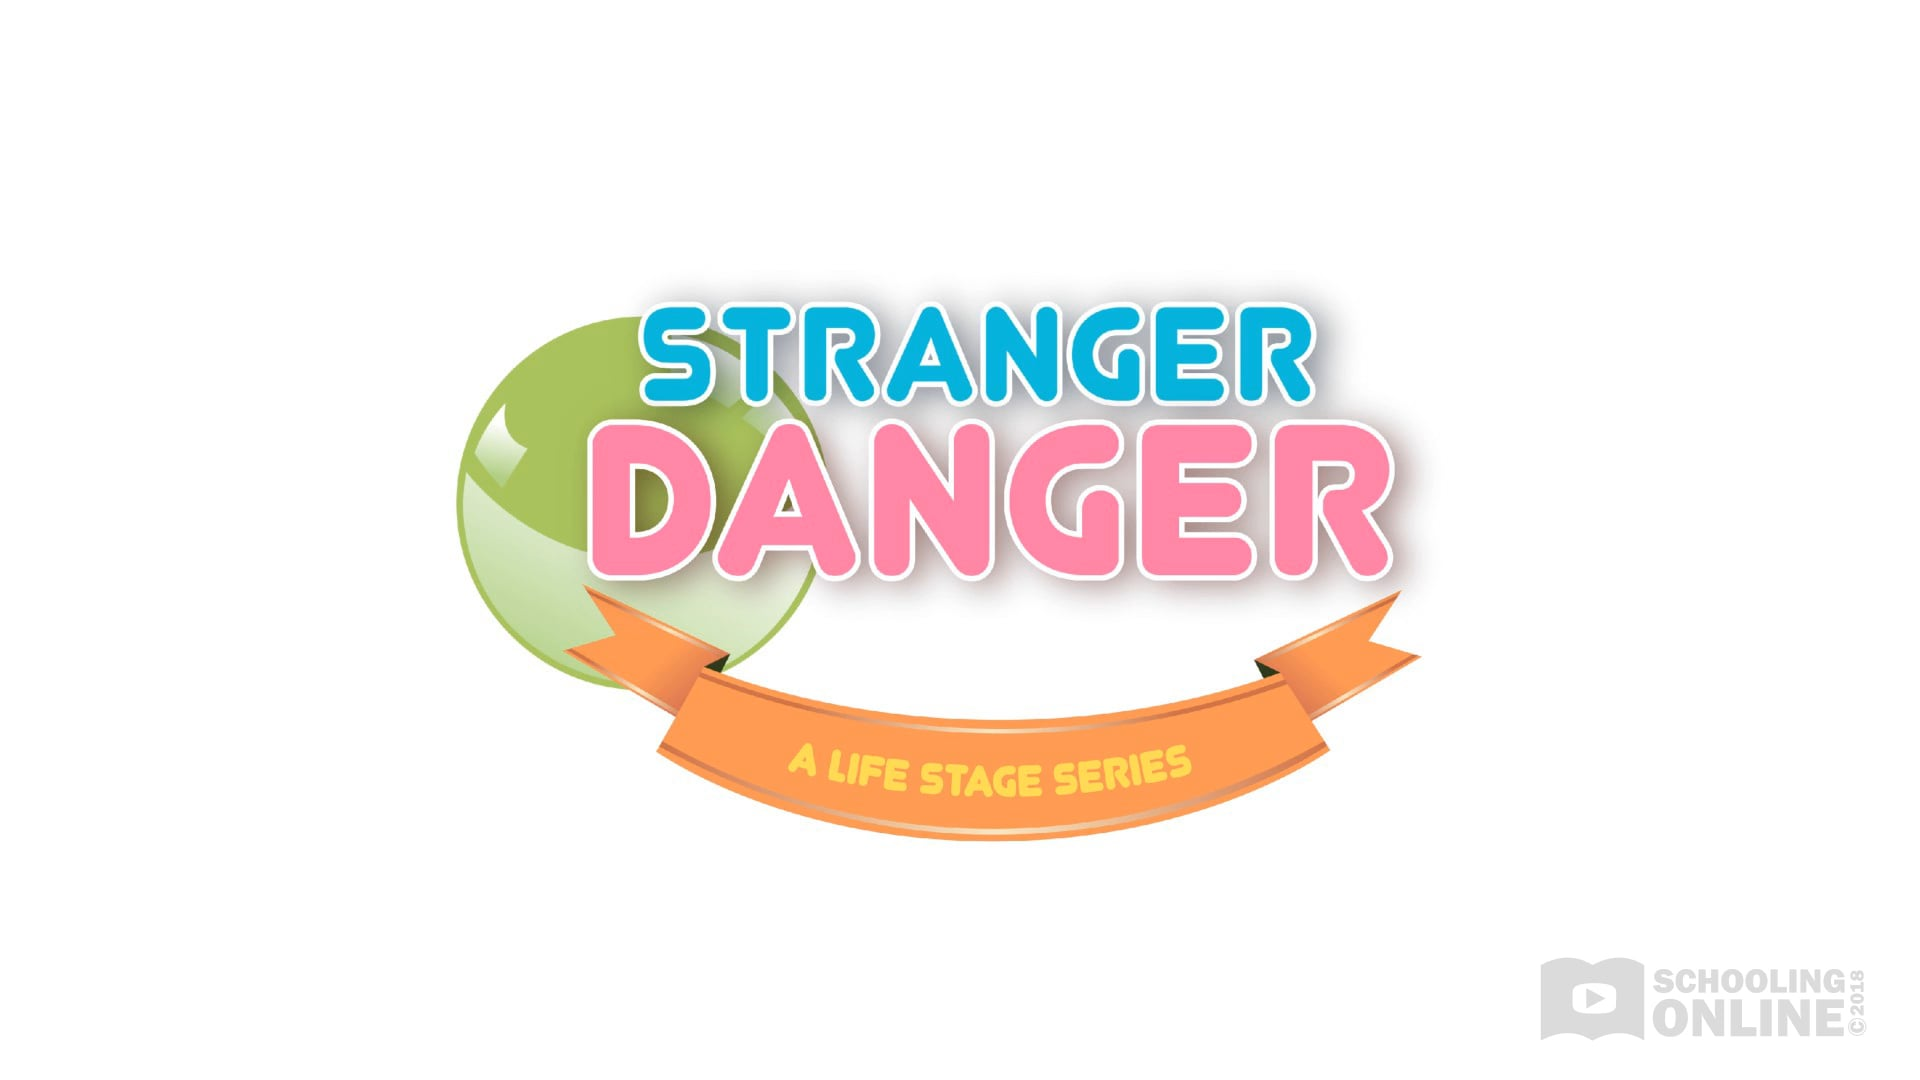 Stranger Danger - The Life Stage Series